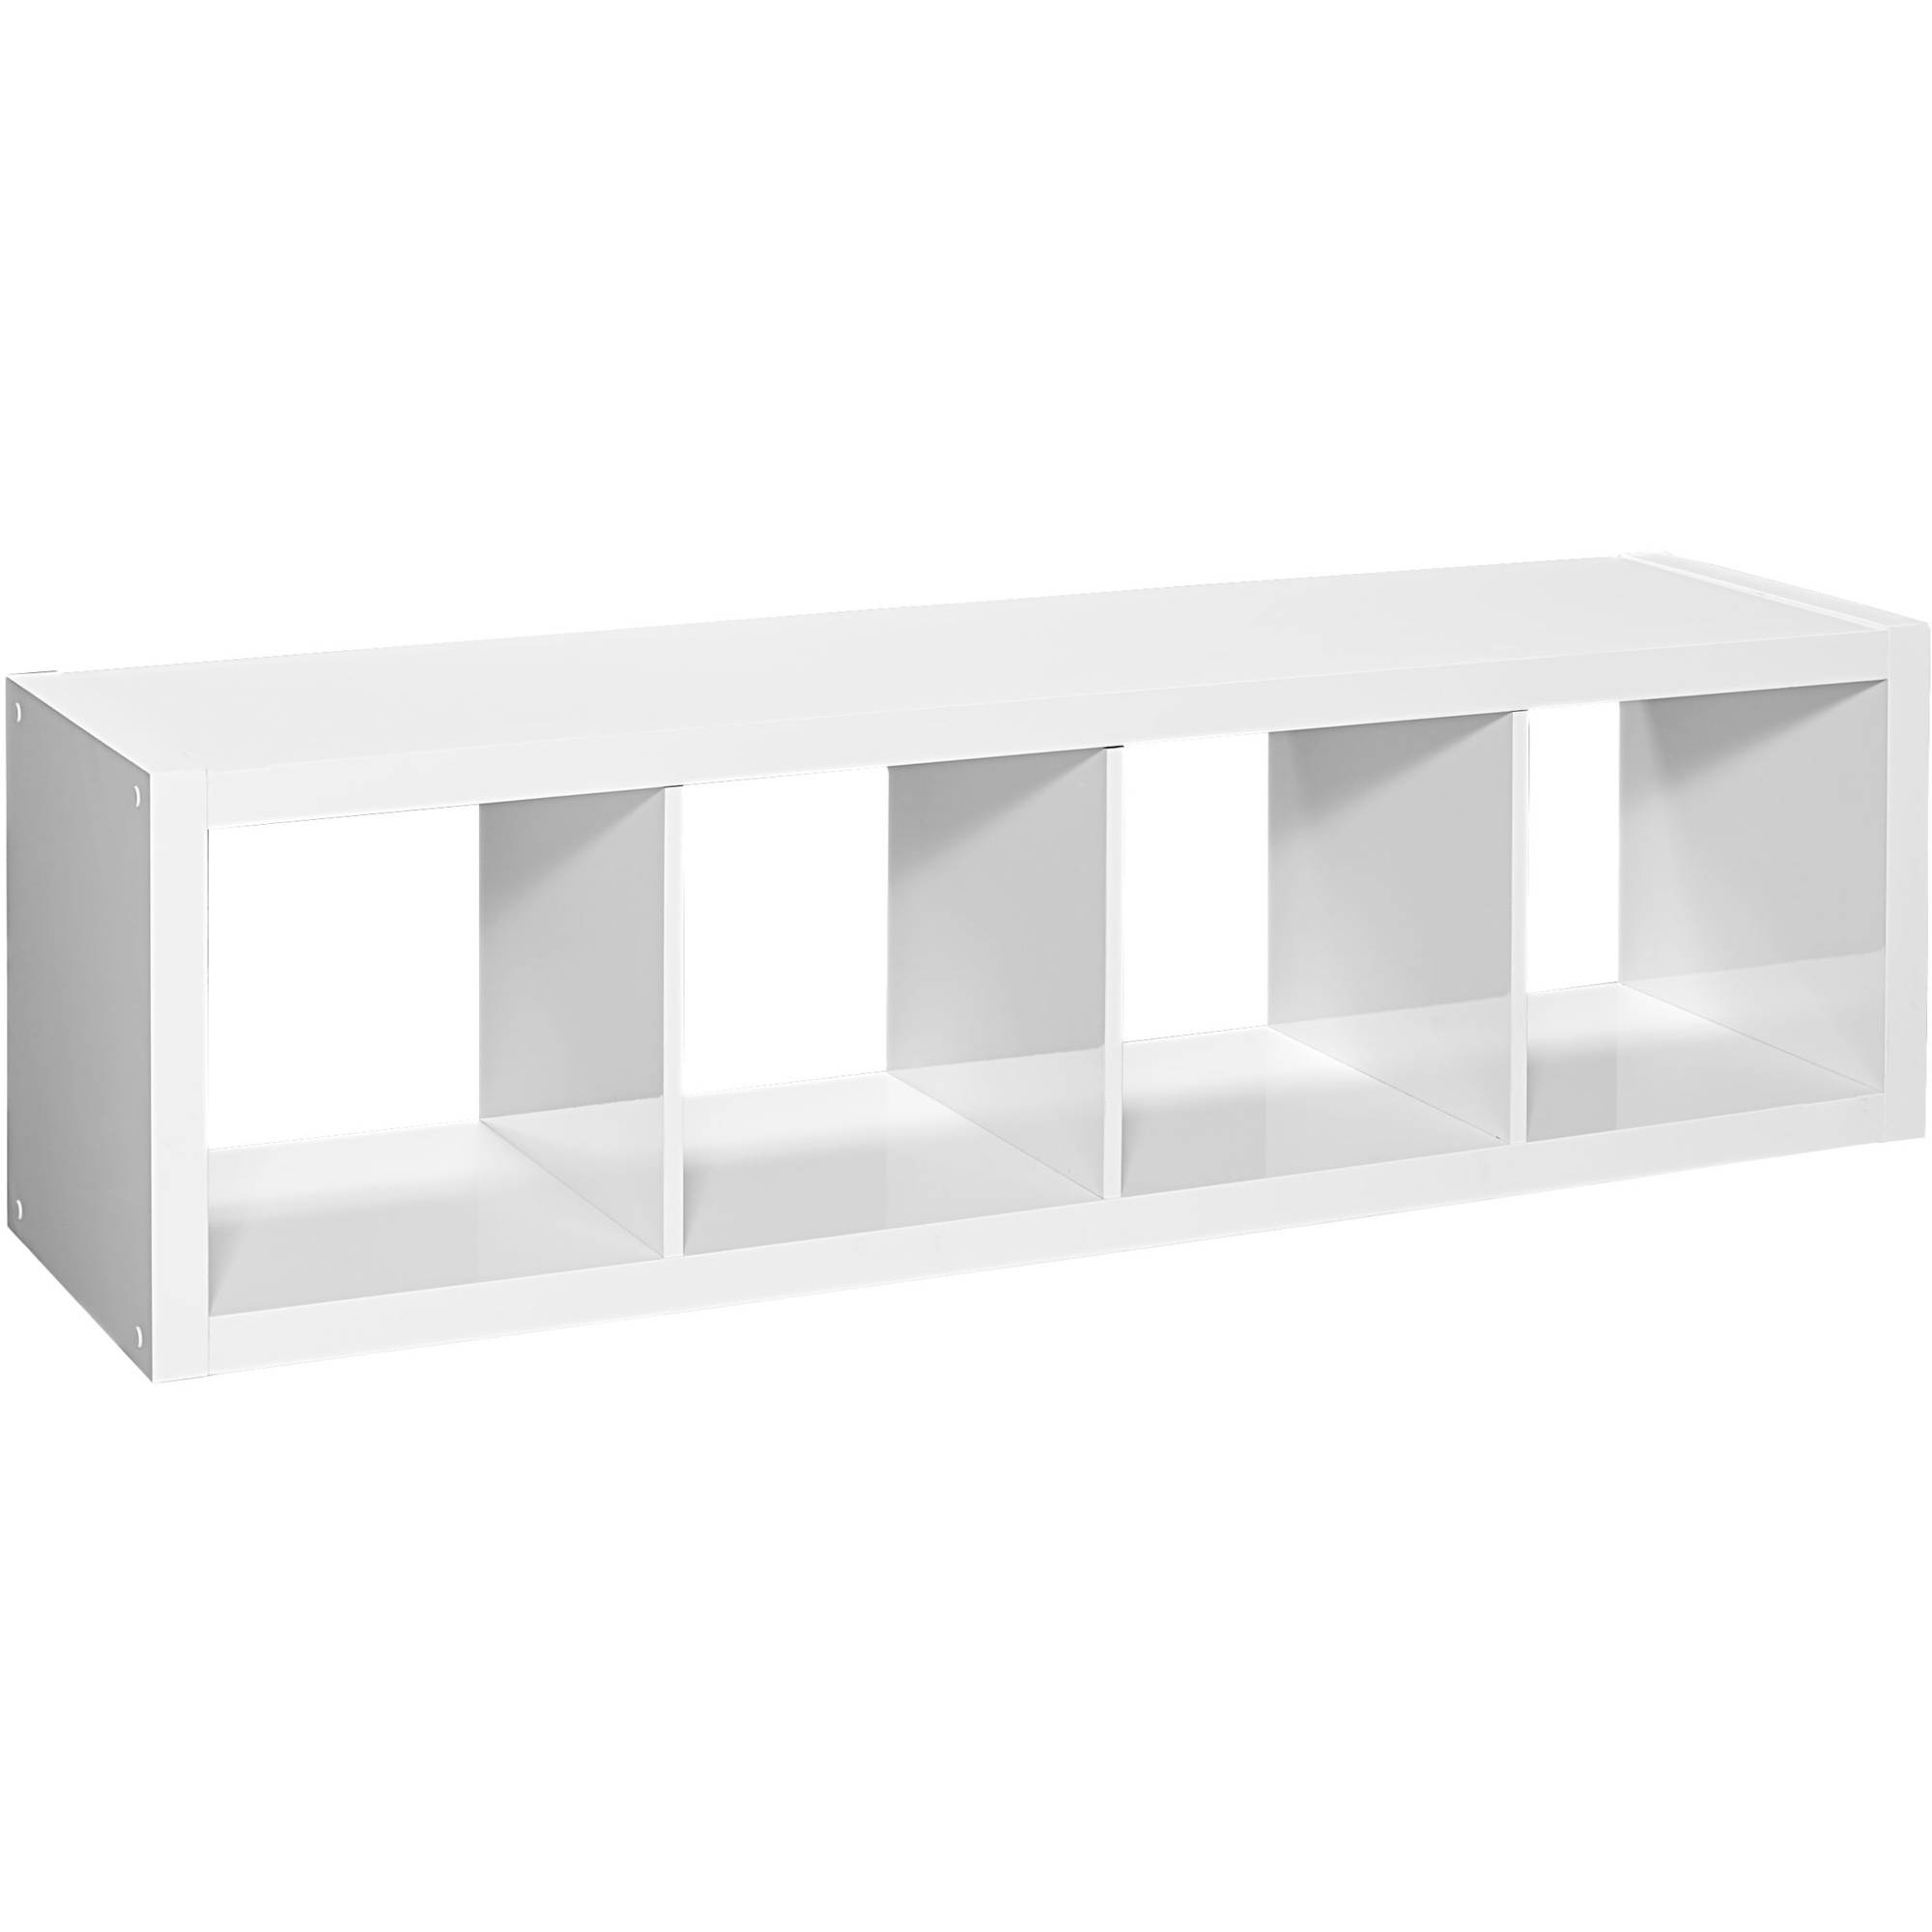 bookcases horizontal bookshelves lamp books with bookcase brown and white modern cool astounding gucci bookshelf